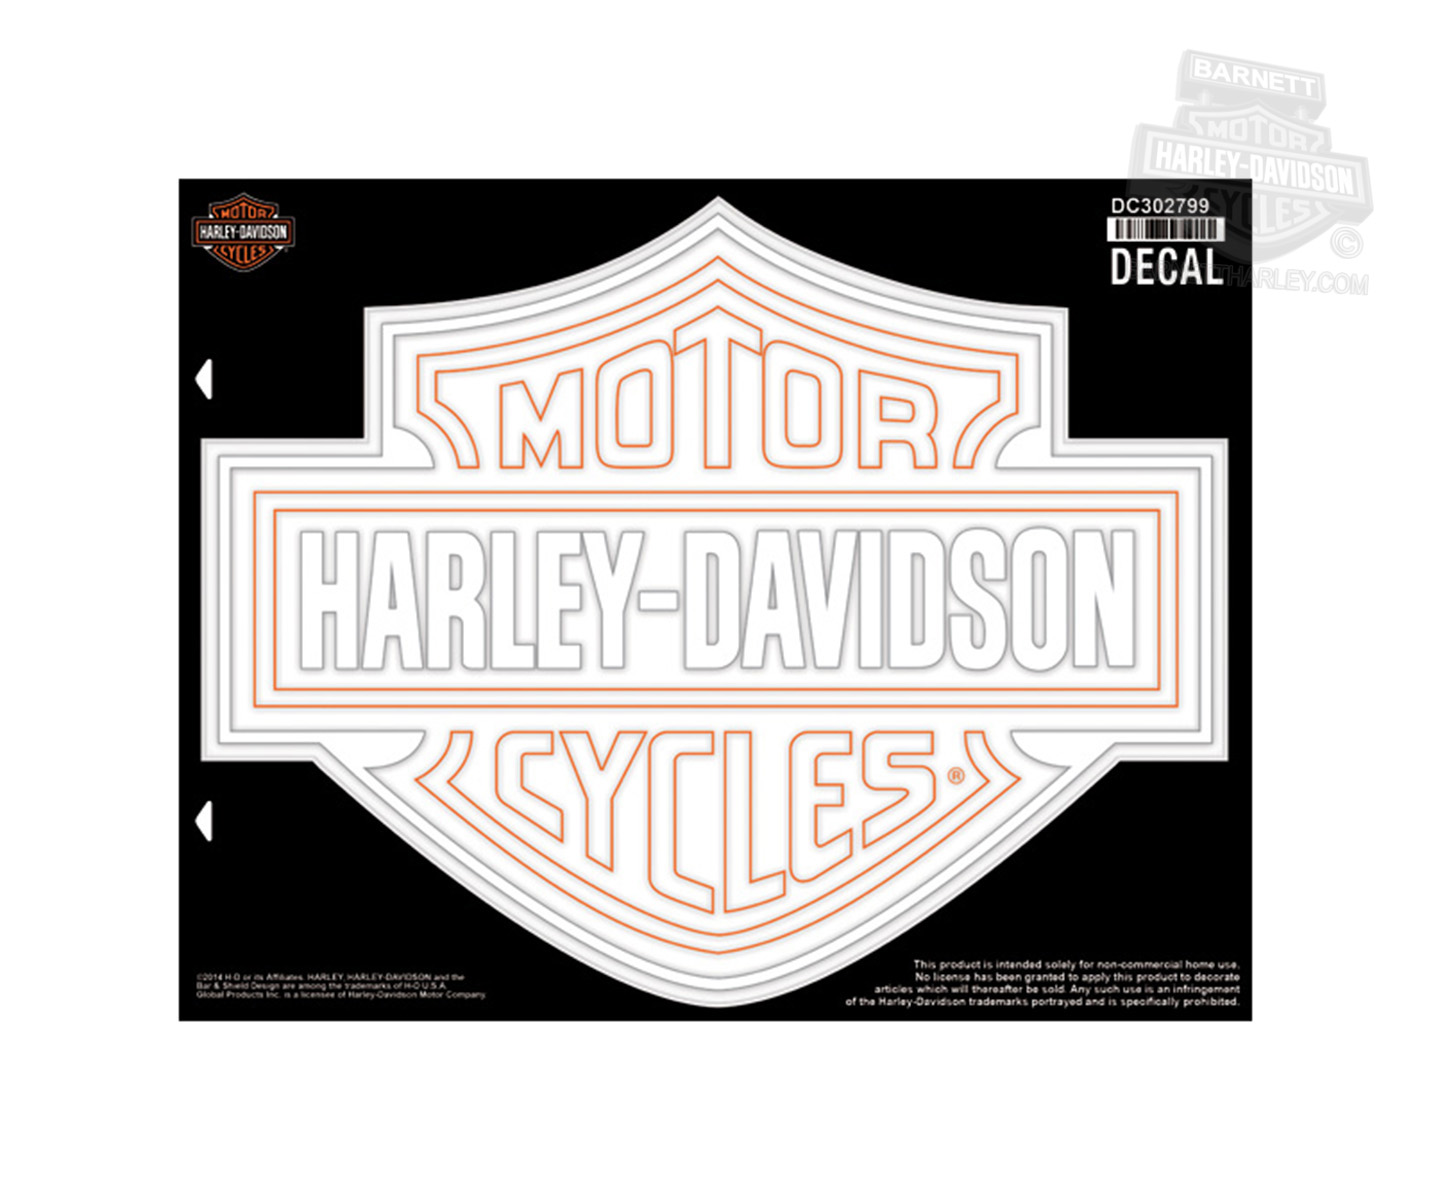 harley davidson logo outline Car Tuning